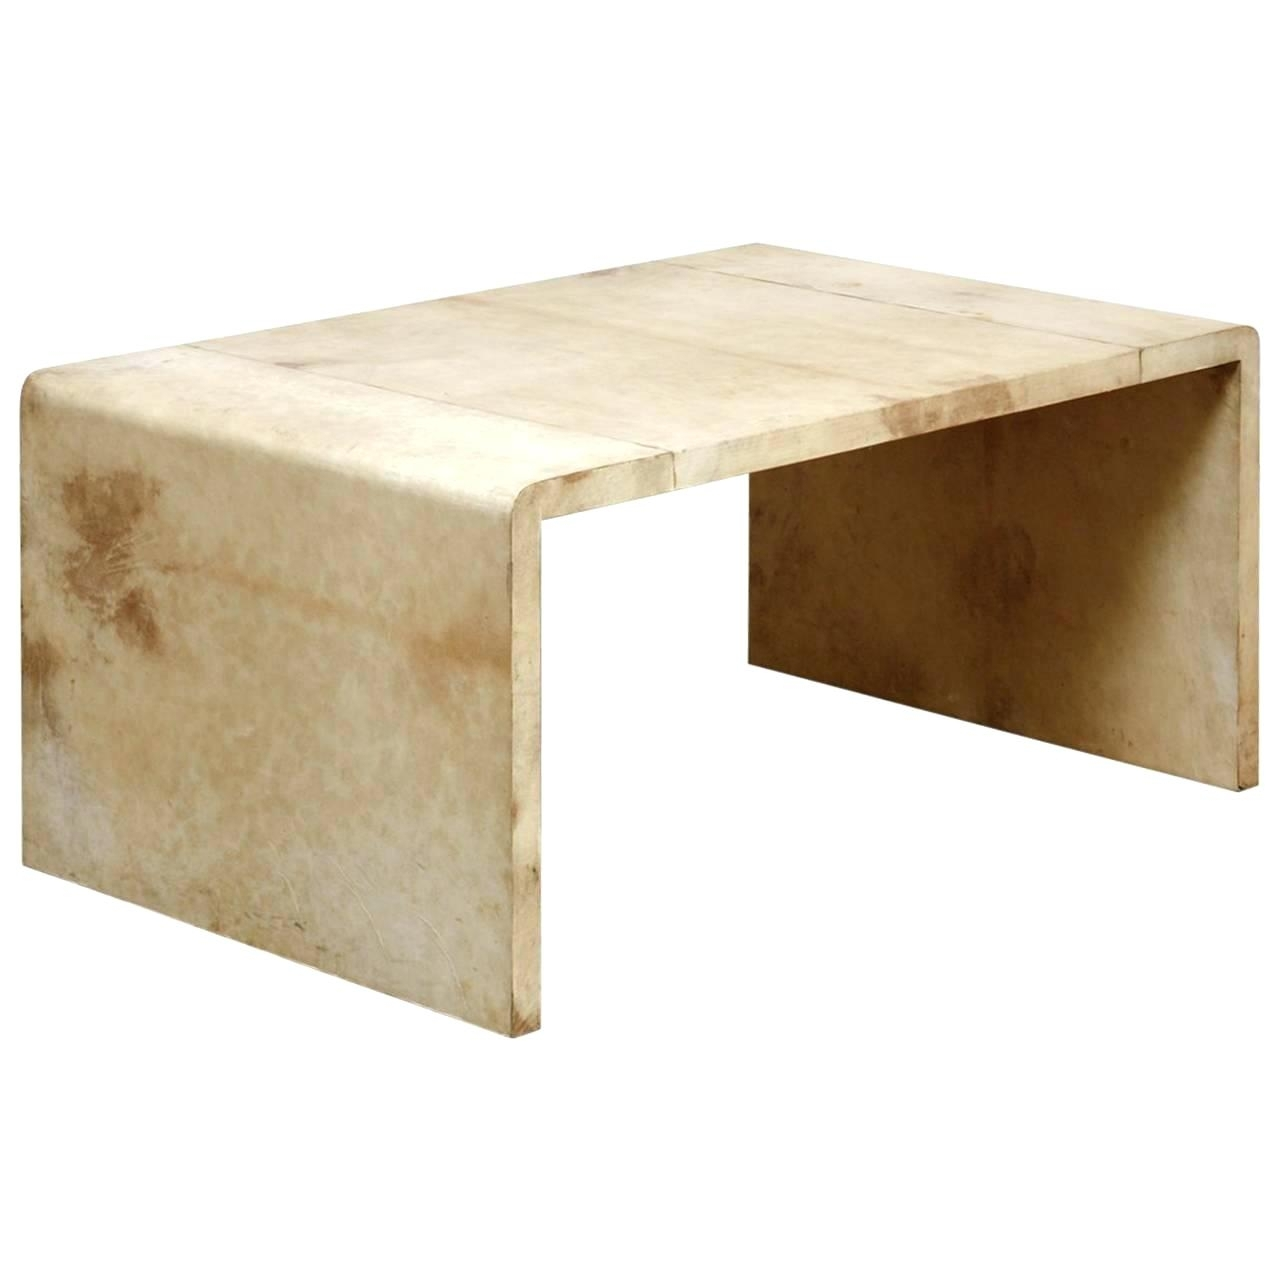 Waterfall Coffee Table Jean Frank Style Goatskin For Sale Square with Square Waterfall Coffee Tables (Image 24 of 30)